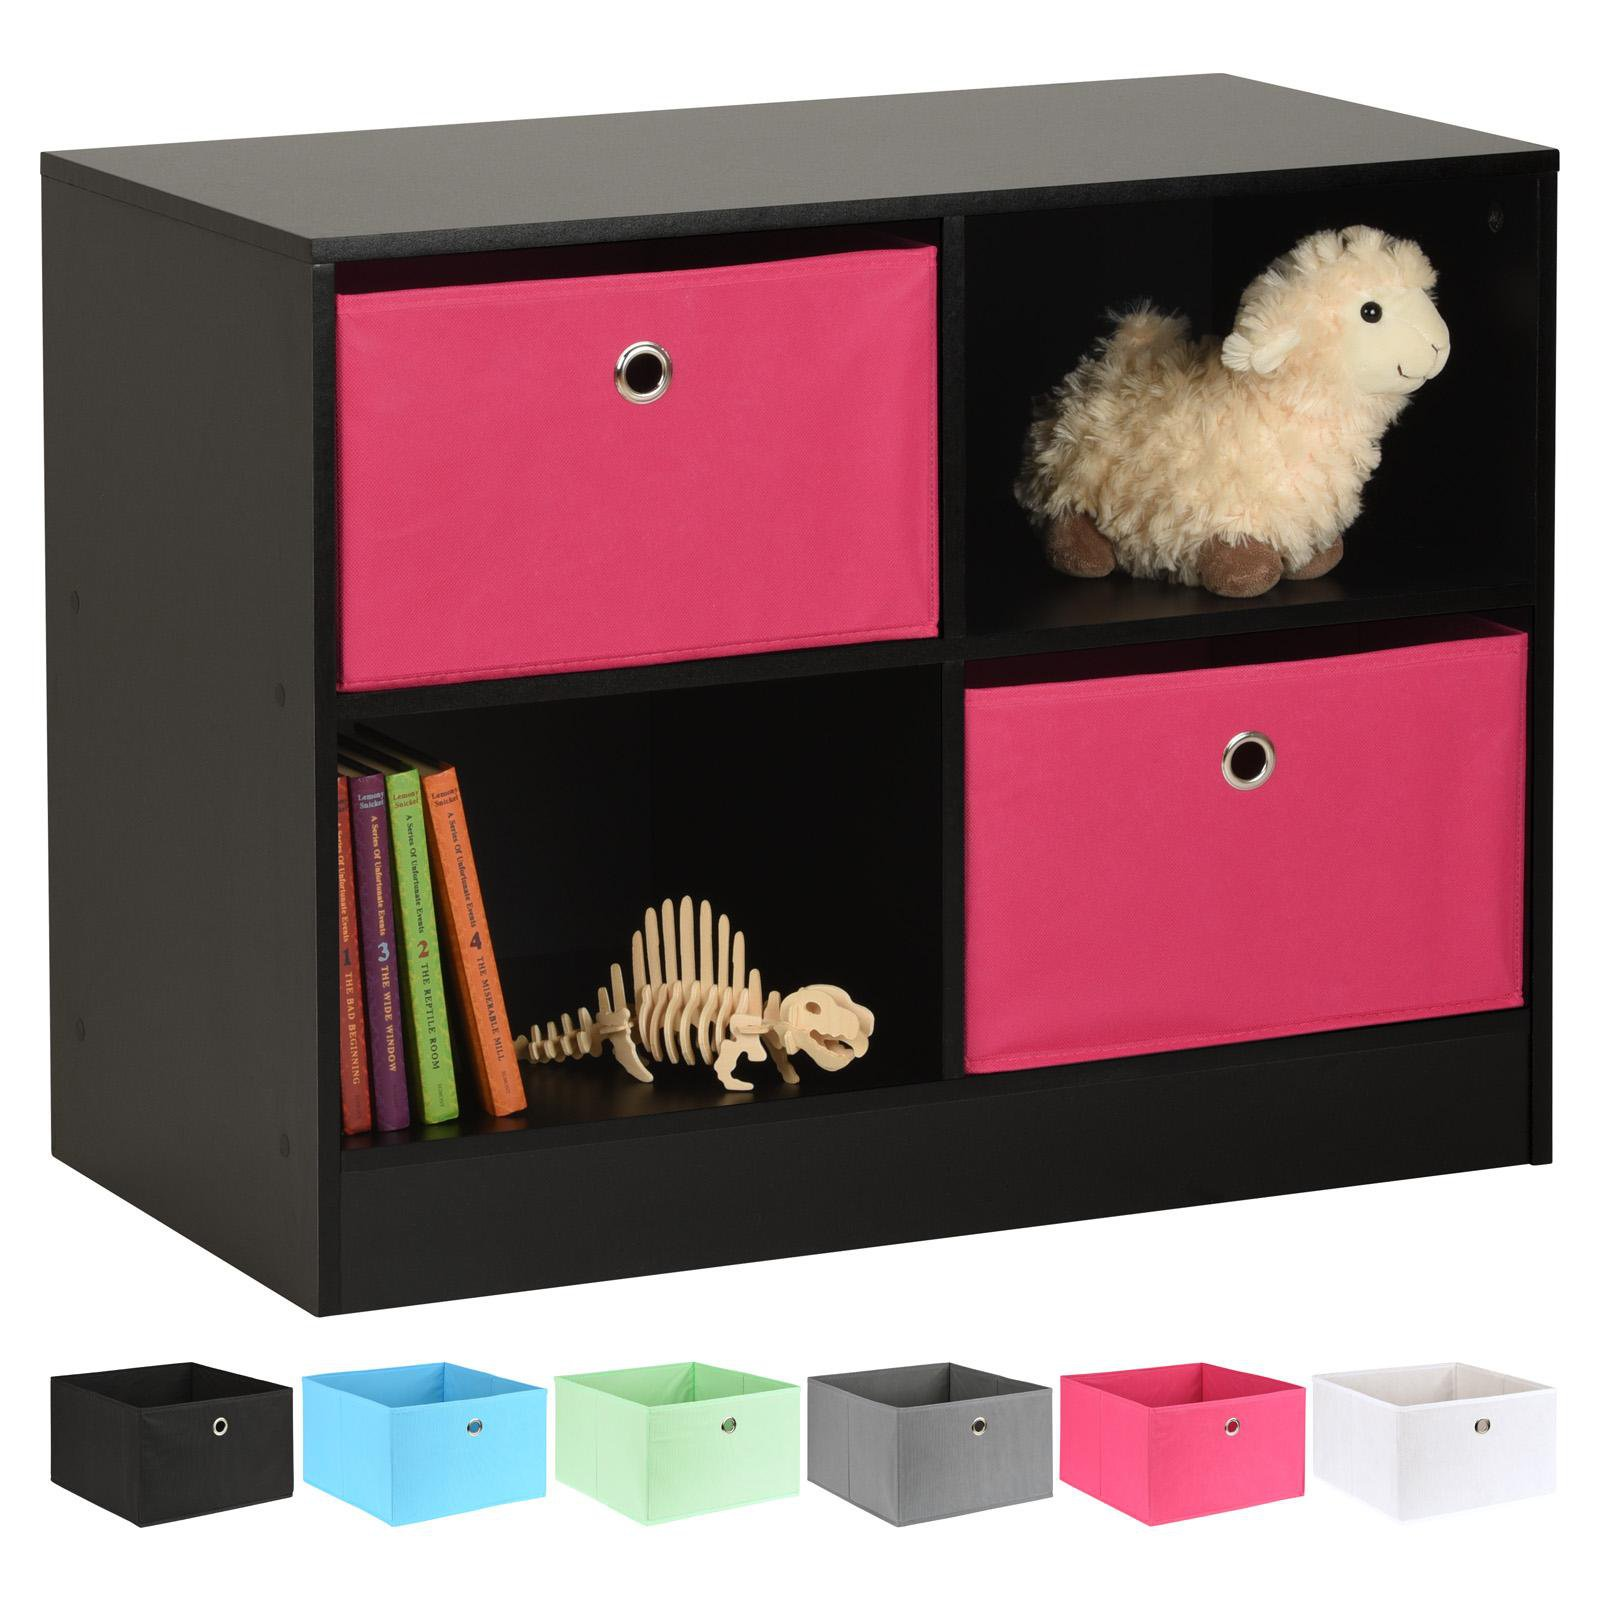 image-Hartleys Black 4 Cube Kids Storage Unit & 2 Easy Grasp Box Drawers - Pink